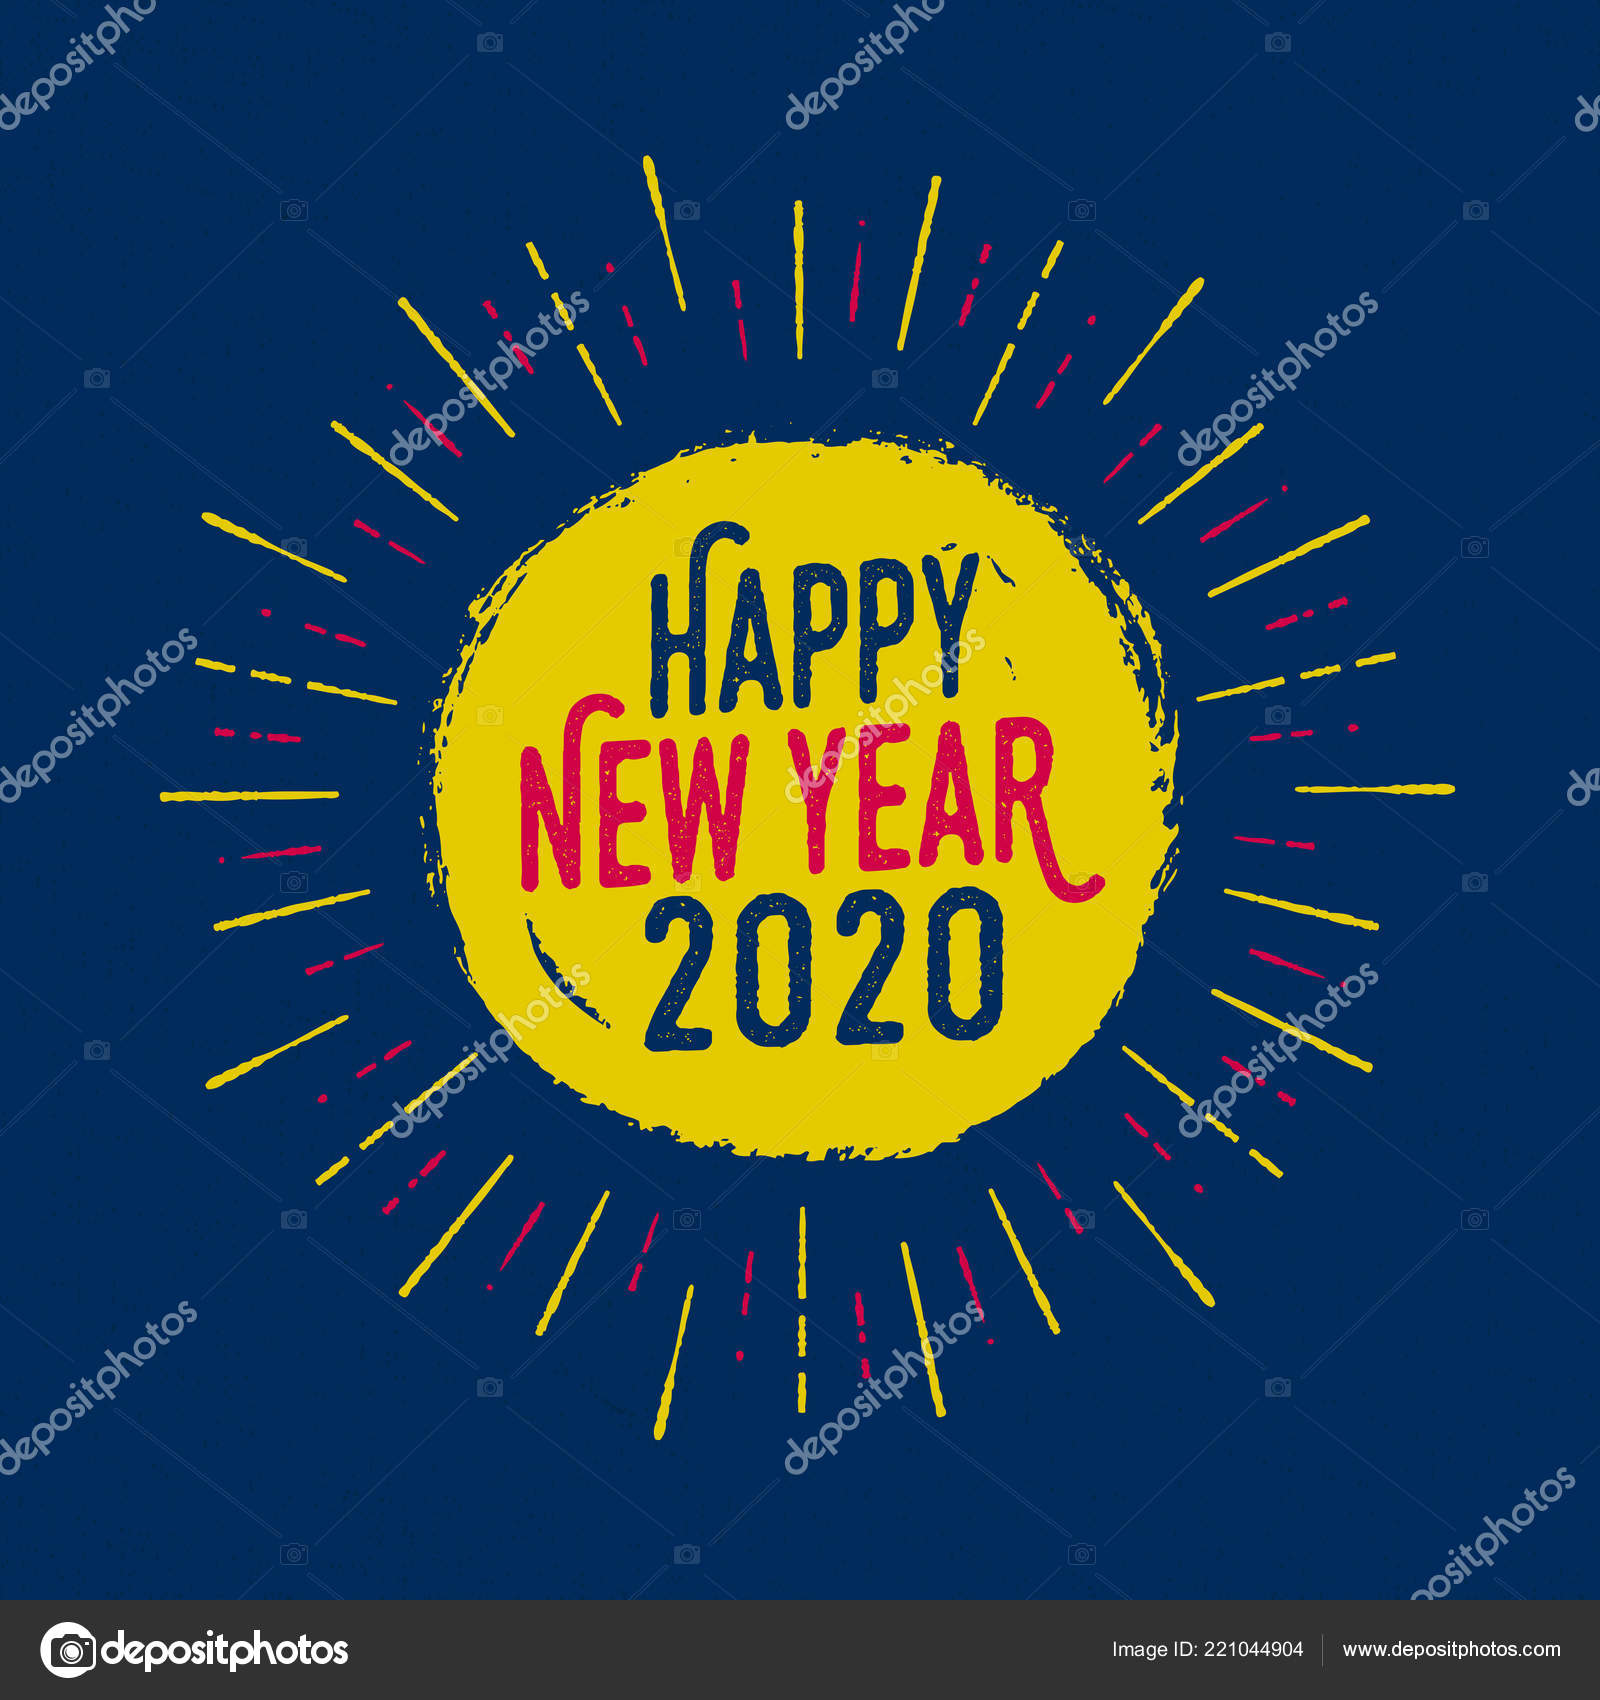 handmade style greeting card happy new year 2020 vector eps10 stock vector c realcallahan 221044904 depositphotos